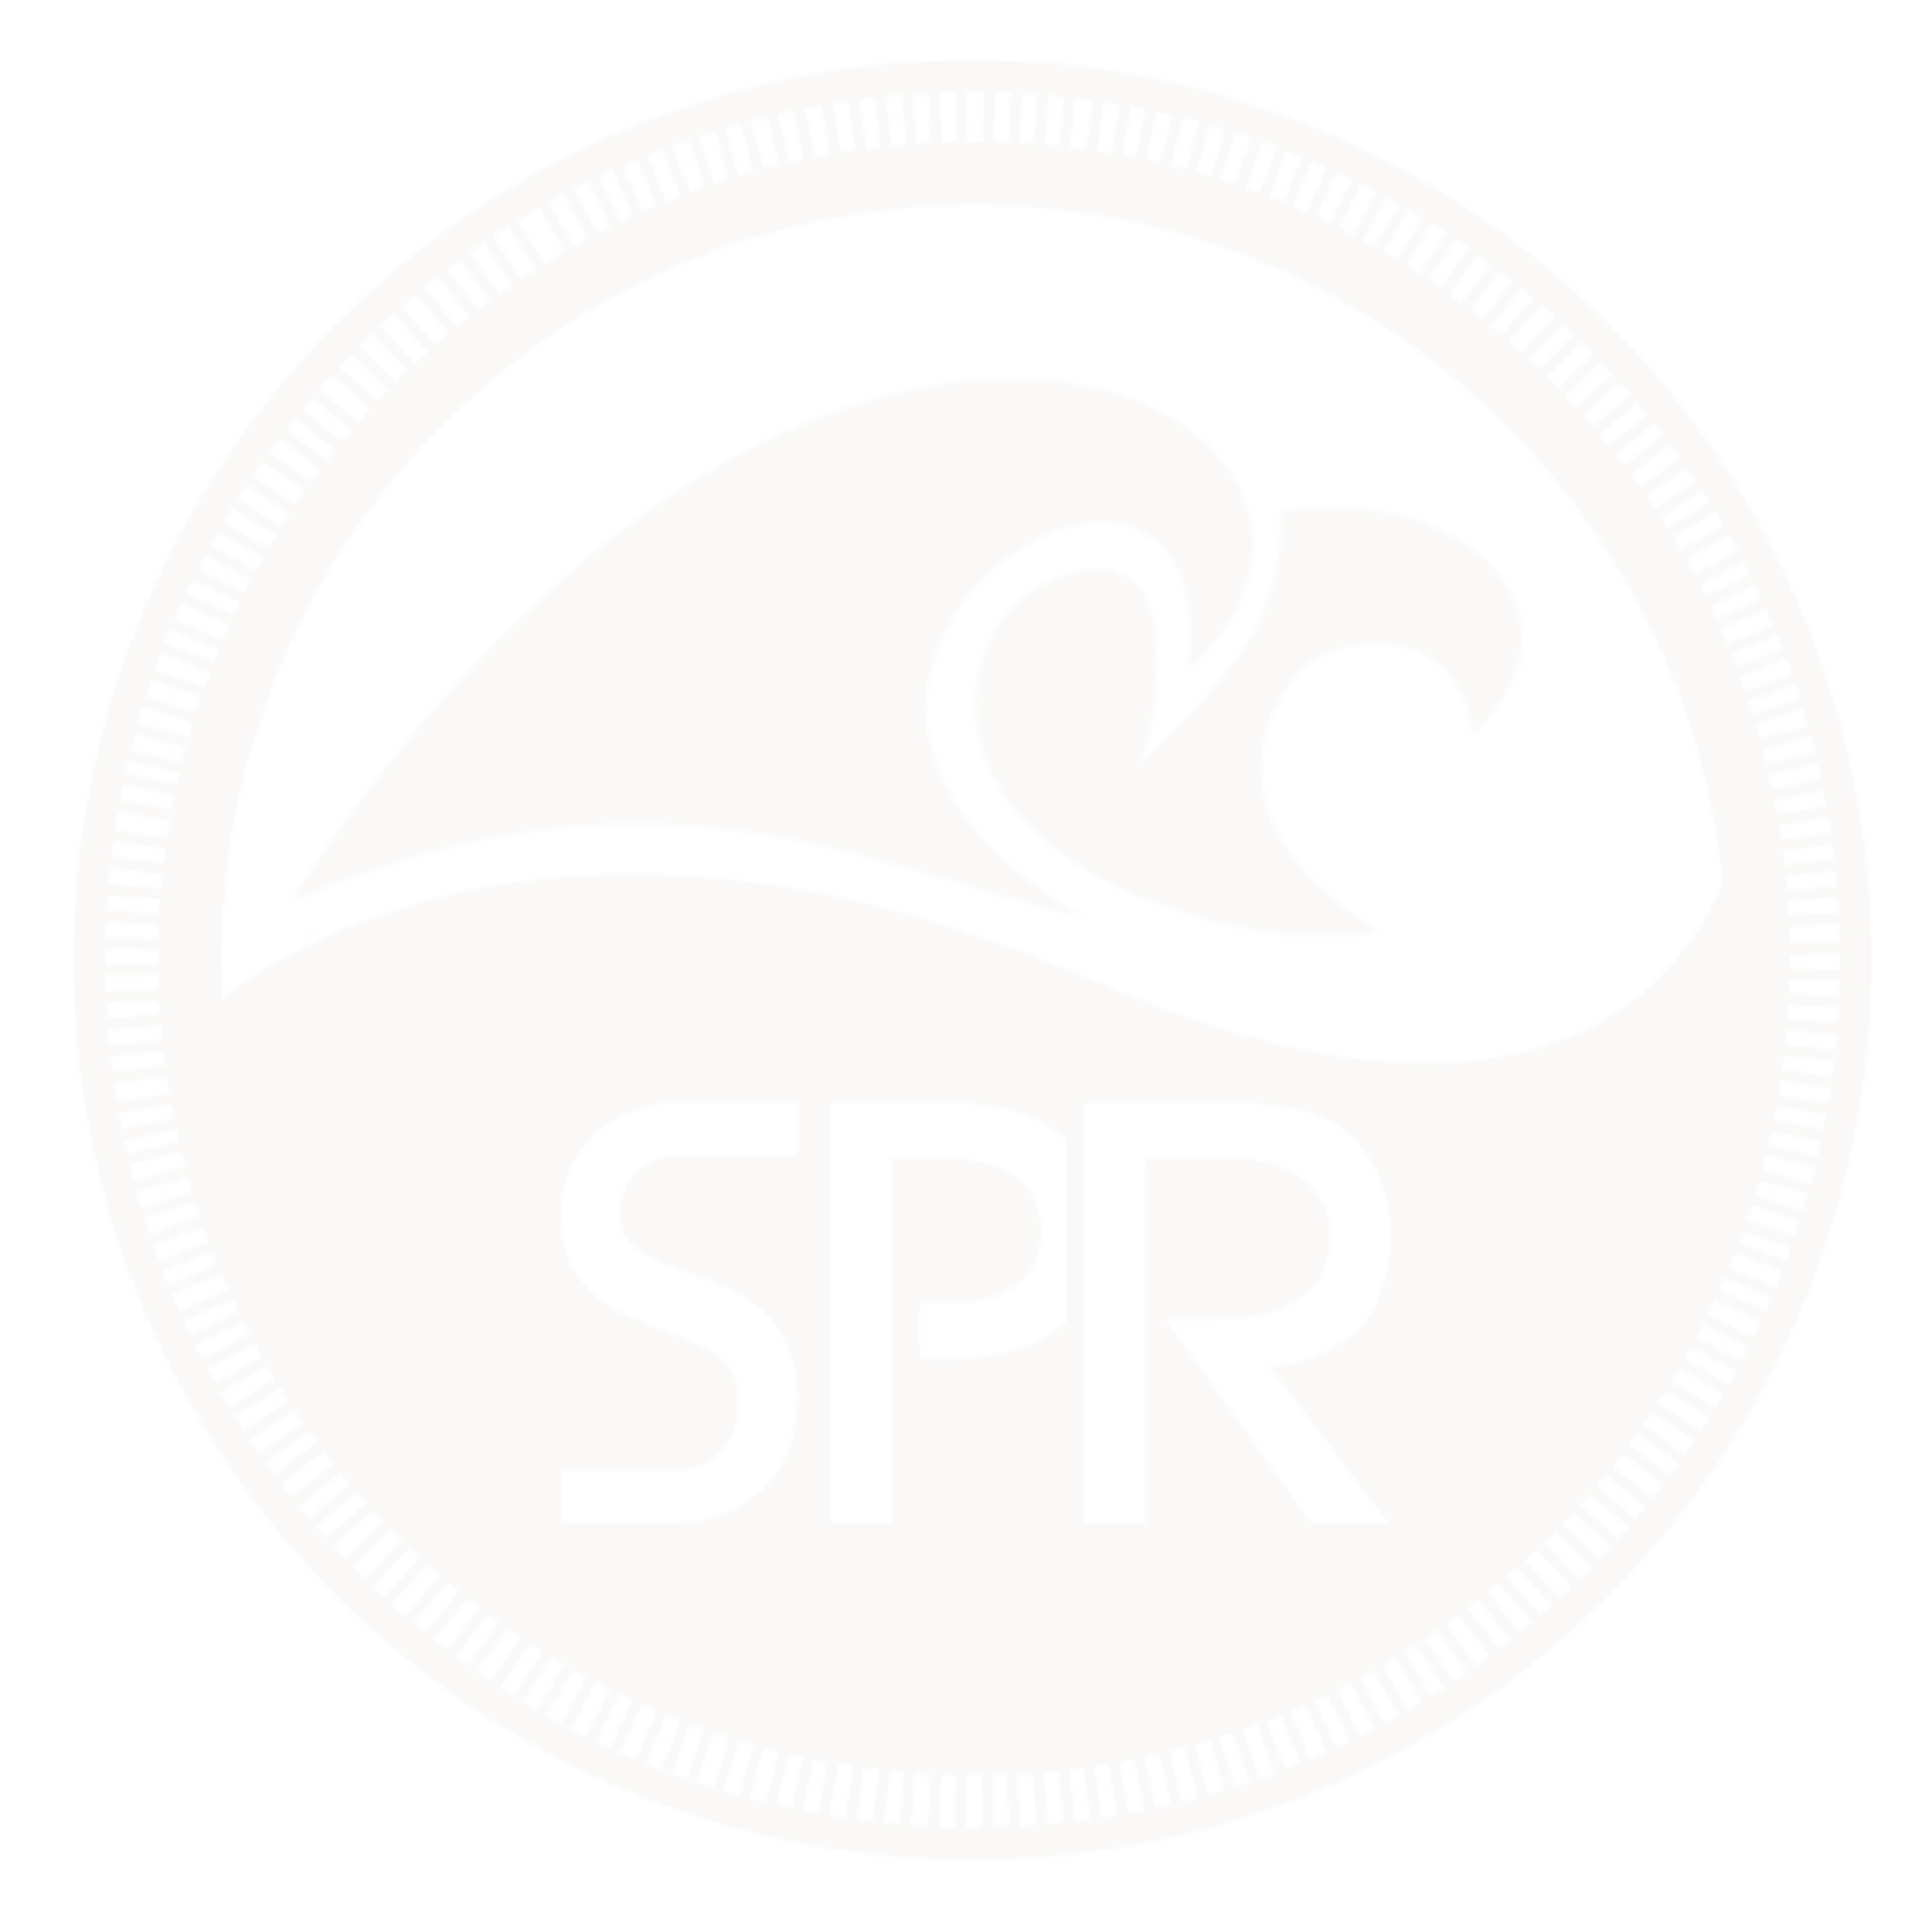 Surfingpr logo badge